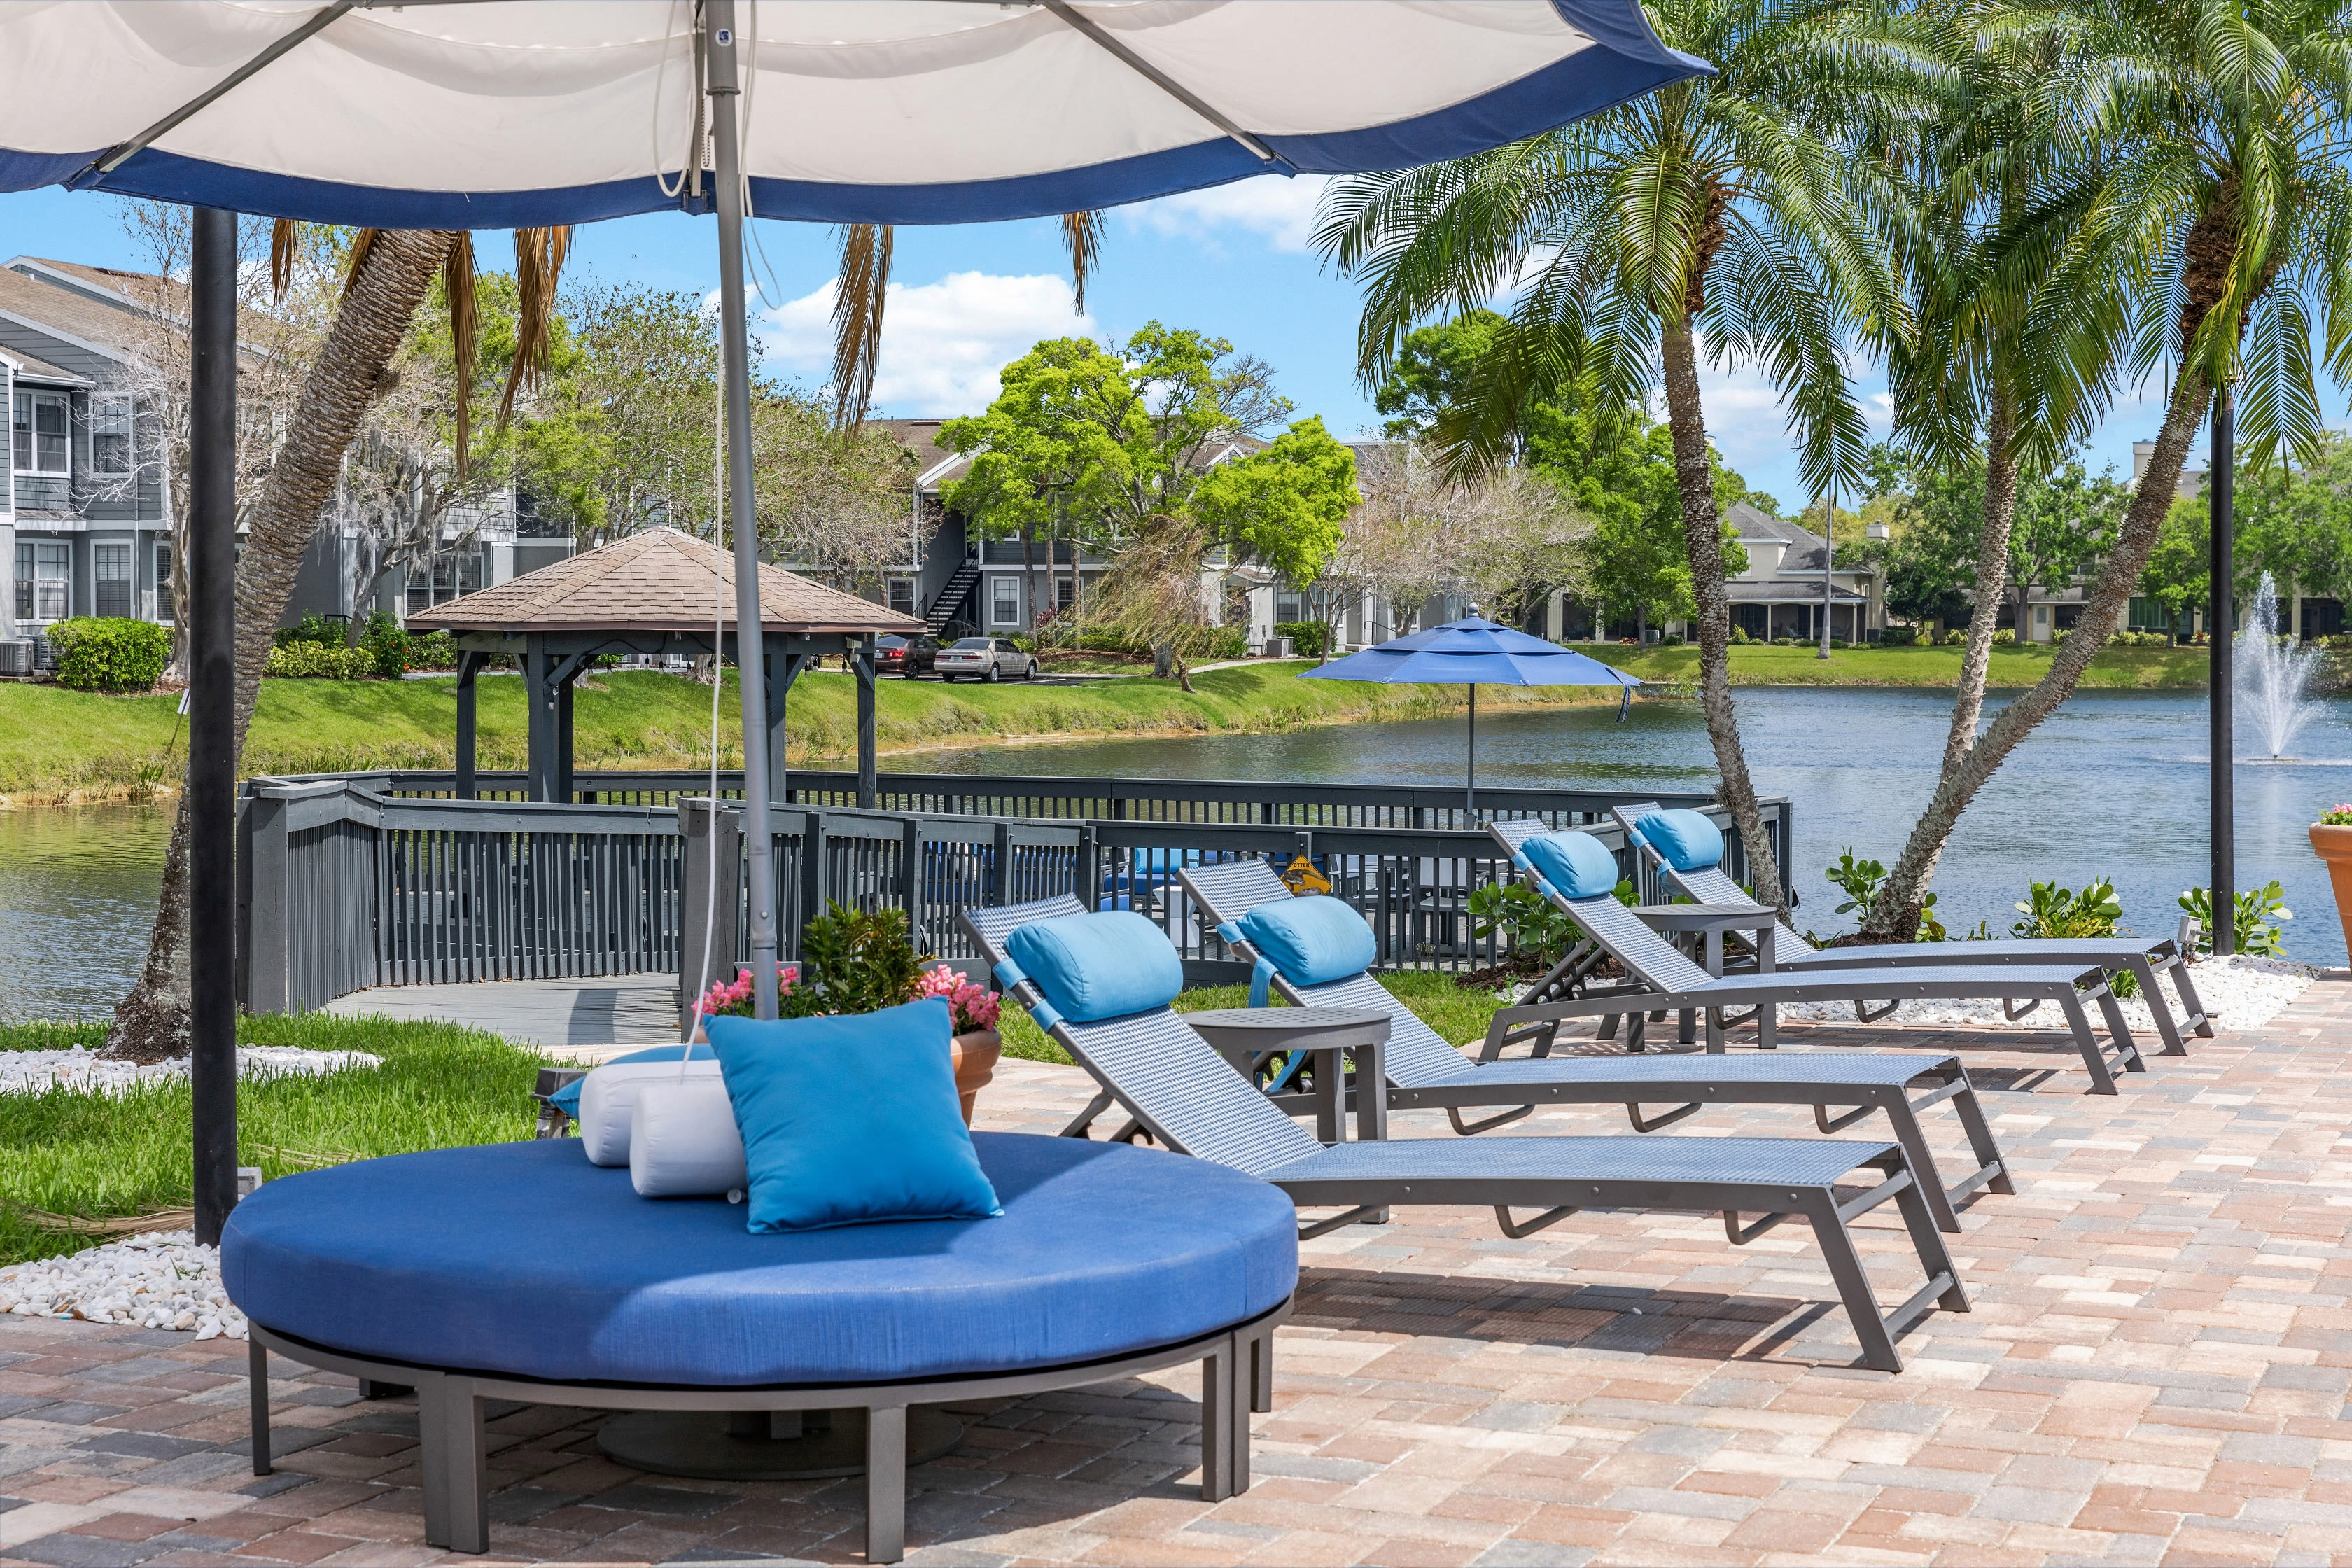 A lake in front of an apartment at Fairways at Feather Sound in Clearwater, FL